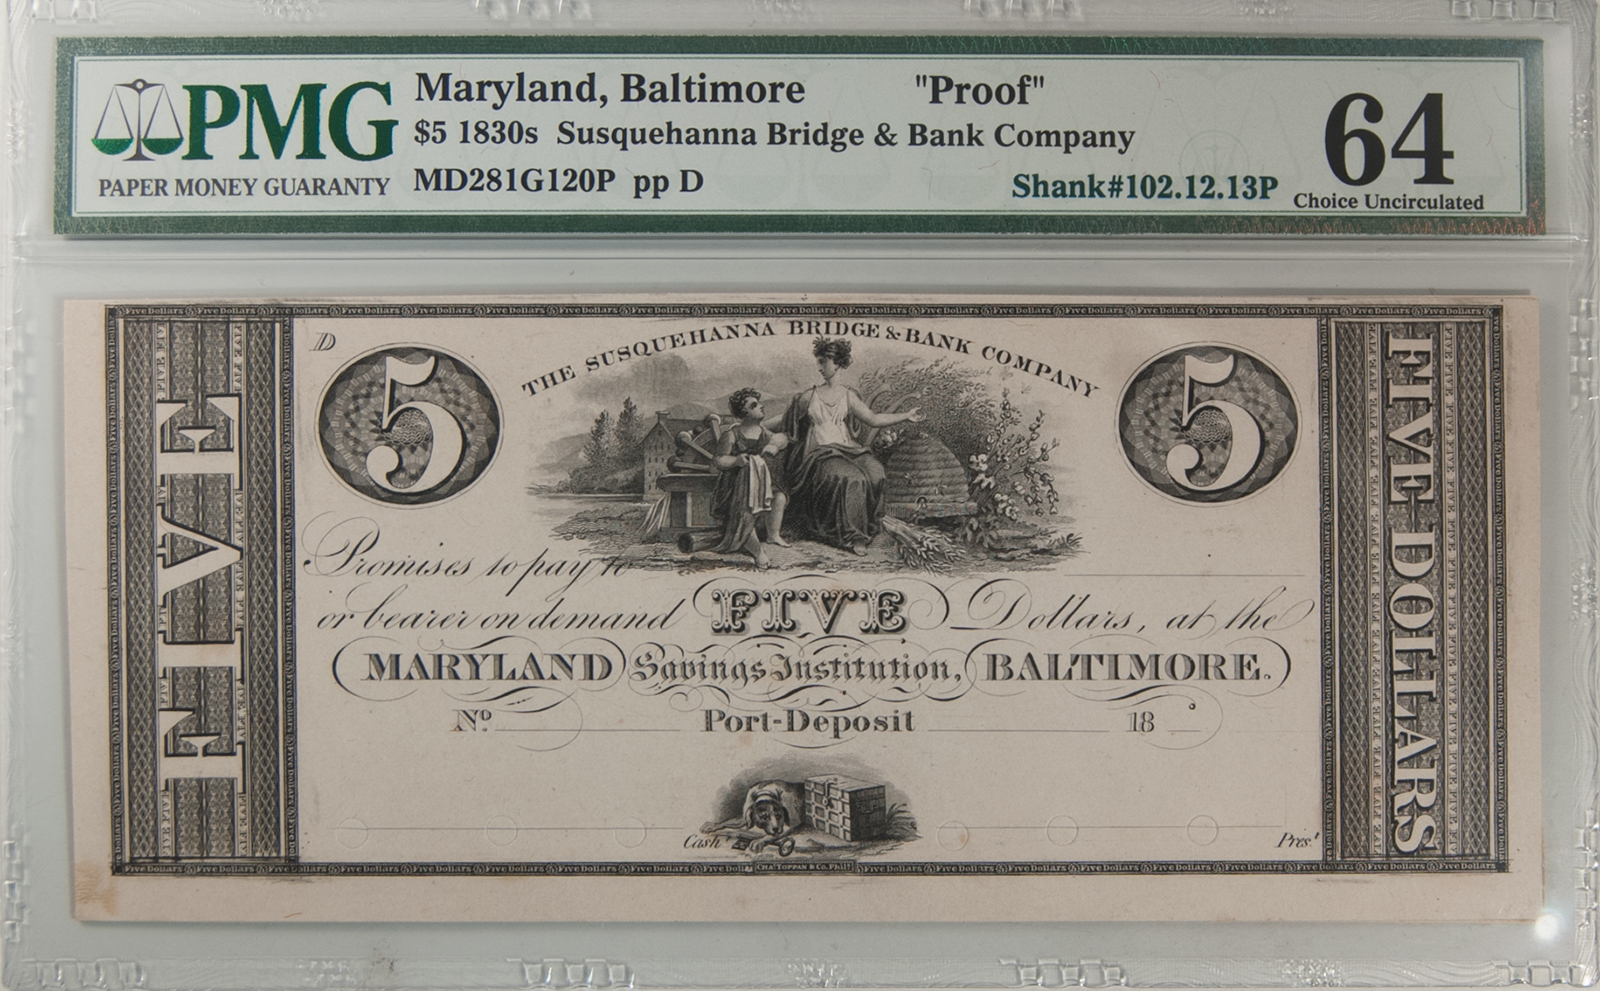 U.S. Currency 1830s BALTIMORE, MD $5.00 SUSQUEHANNA BRIDGE & BANK COMPANY PMG CH UNC-64 PROOF